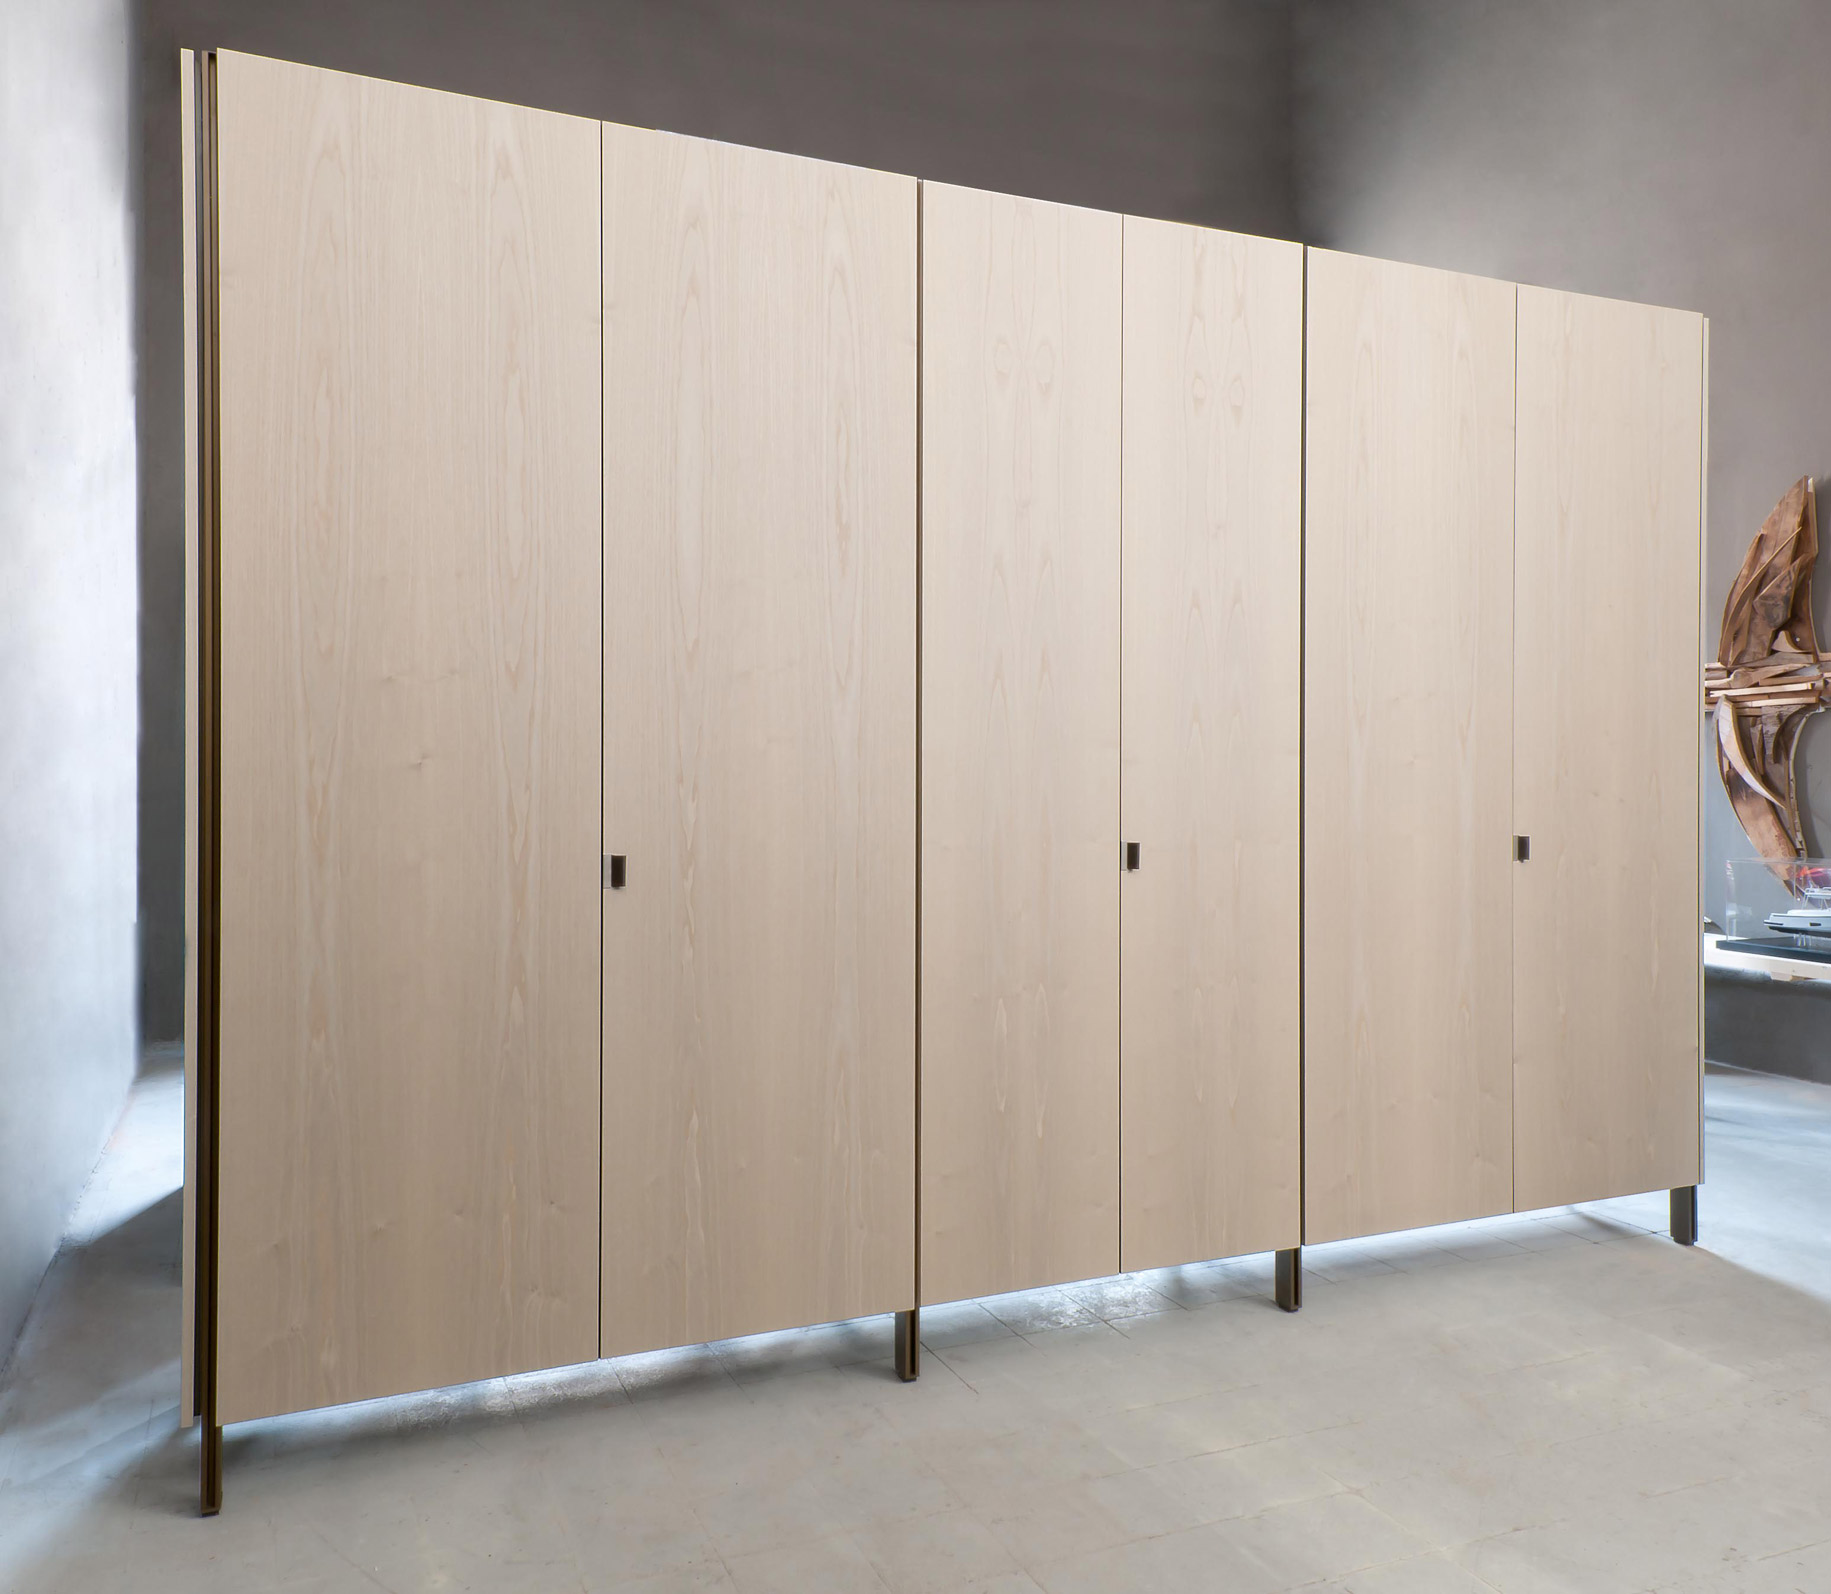 Wardrobe Partition: Solo: Closet & Partition System